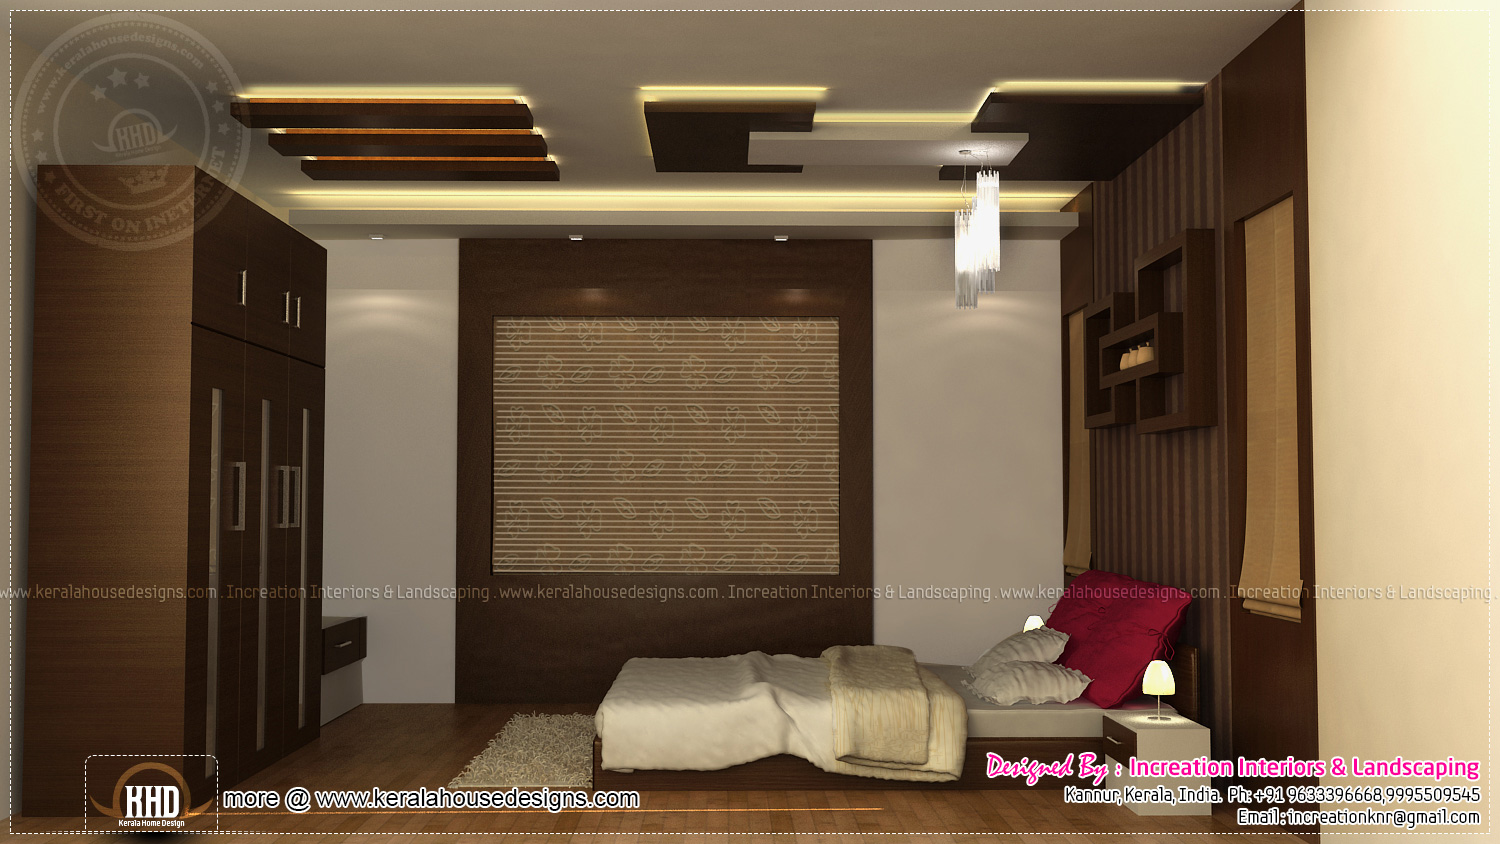 Interior designs by increation kannur kerala home for Interior designs photos